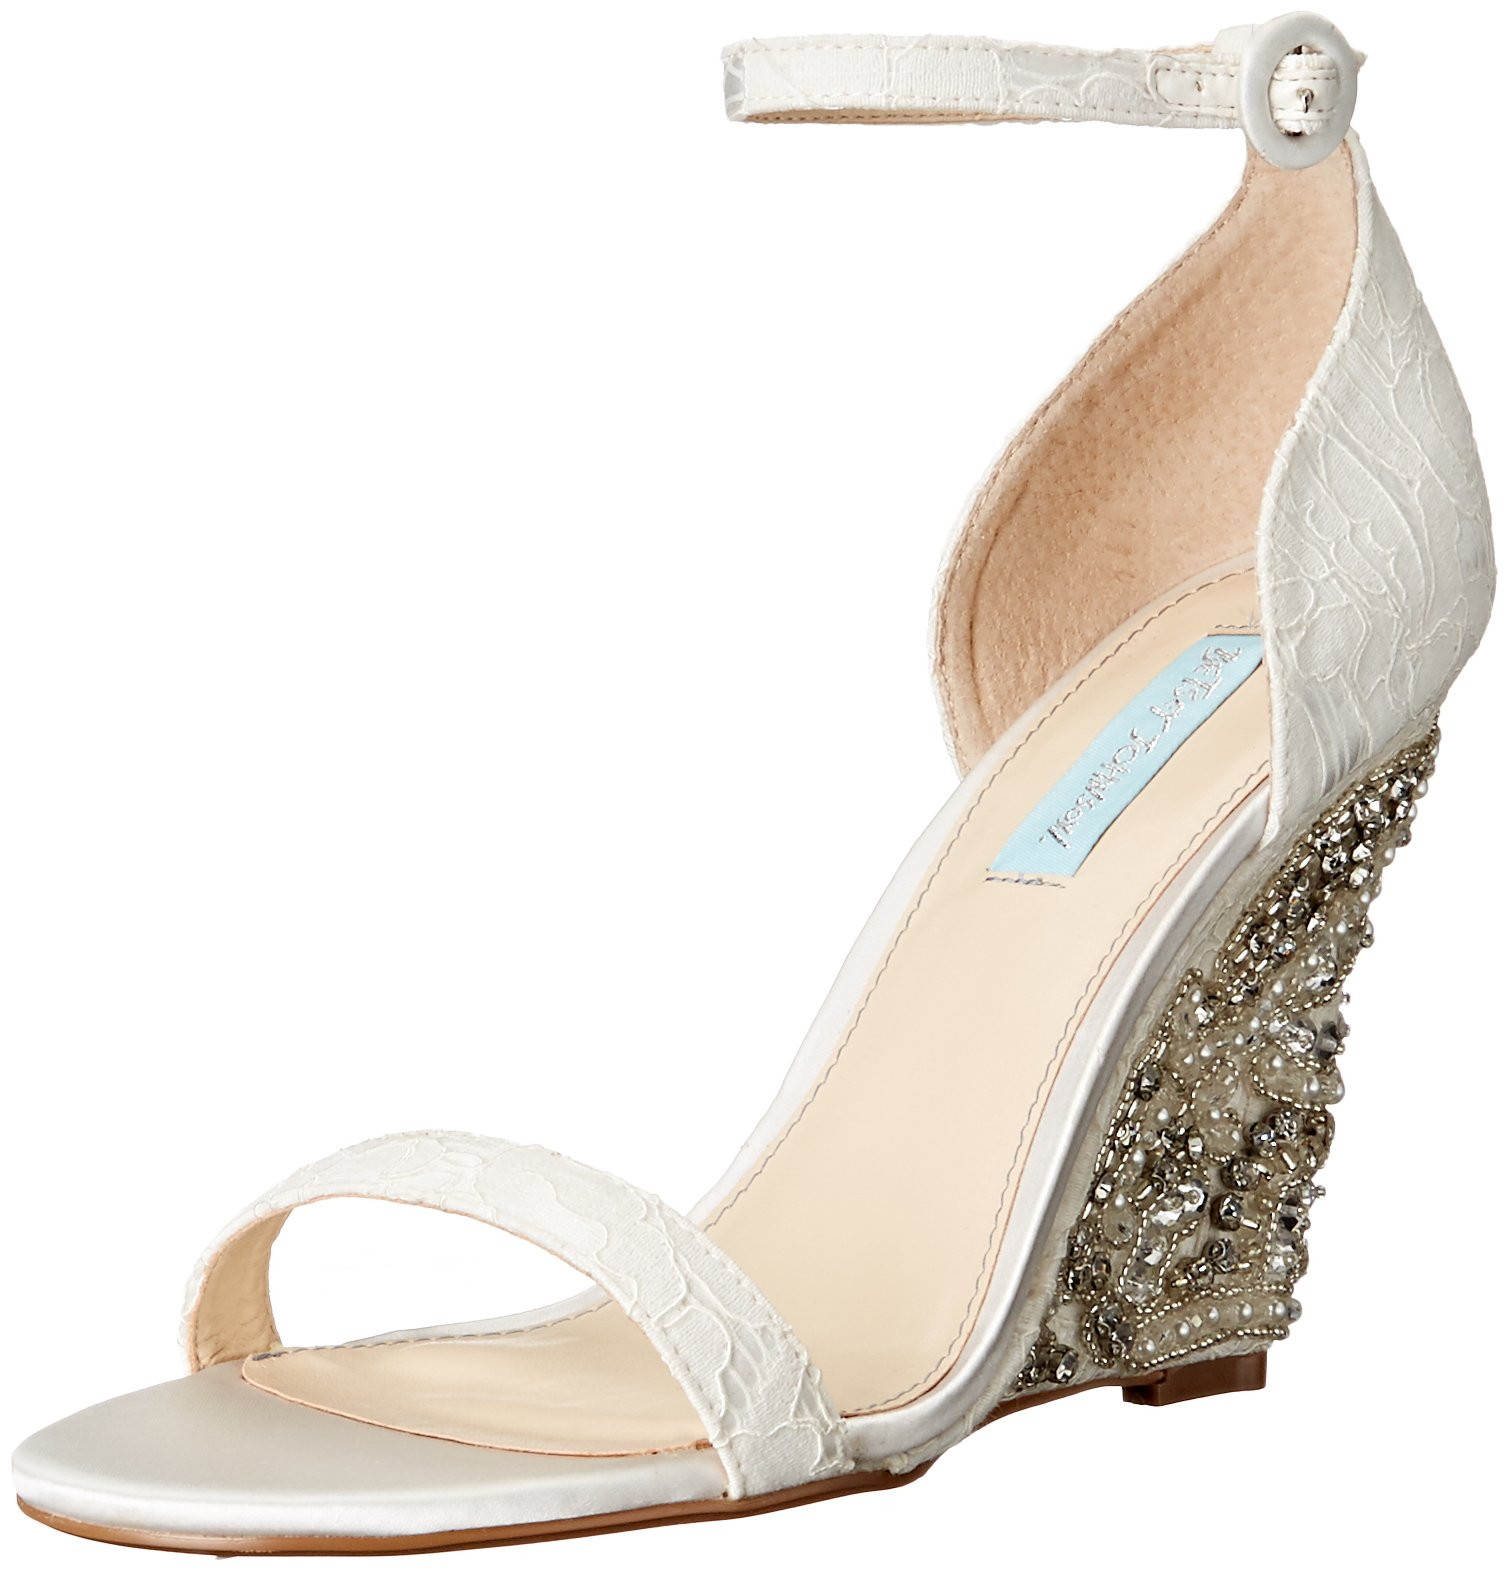 Blue by Betsey Johnson Women's Sb-Alisa Wedge Sandal, Ivory, 10 M US